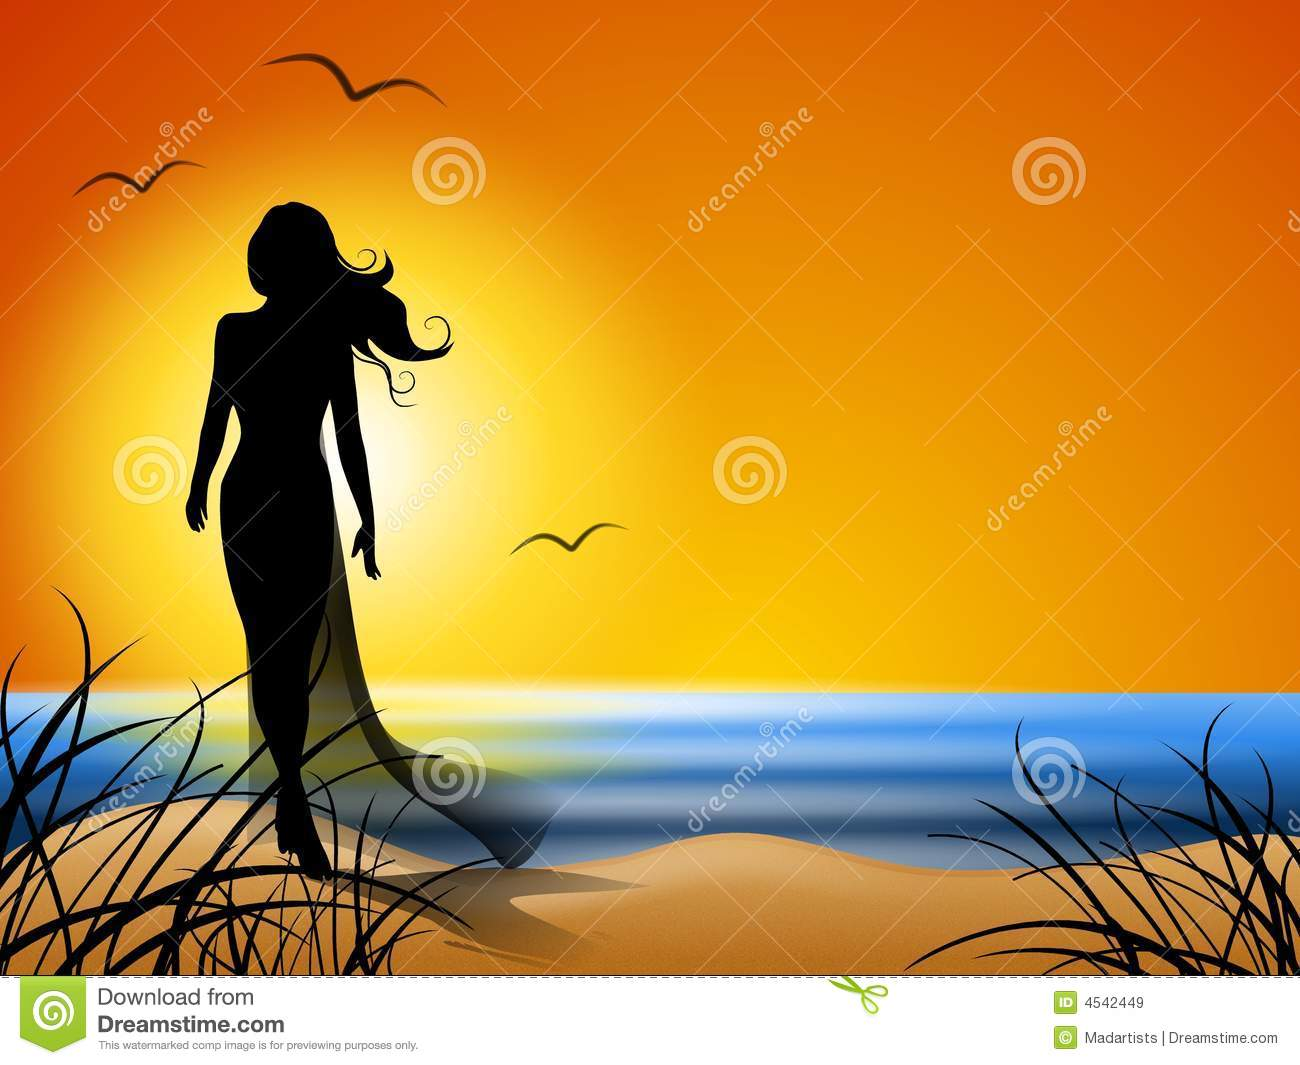 Woman Walking Alone On Beach Royalty Free Stock Images.